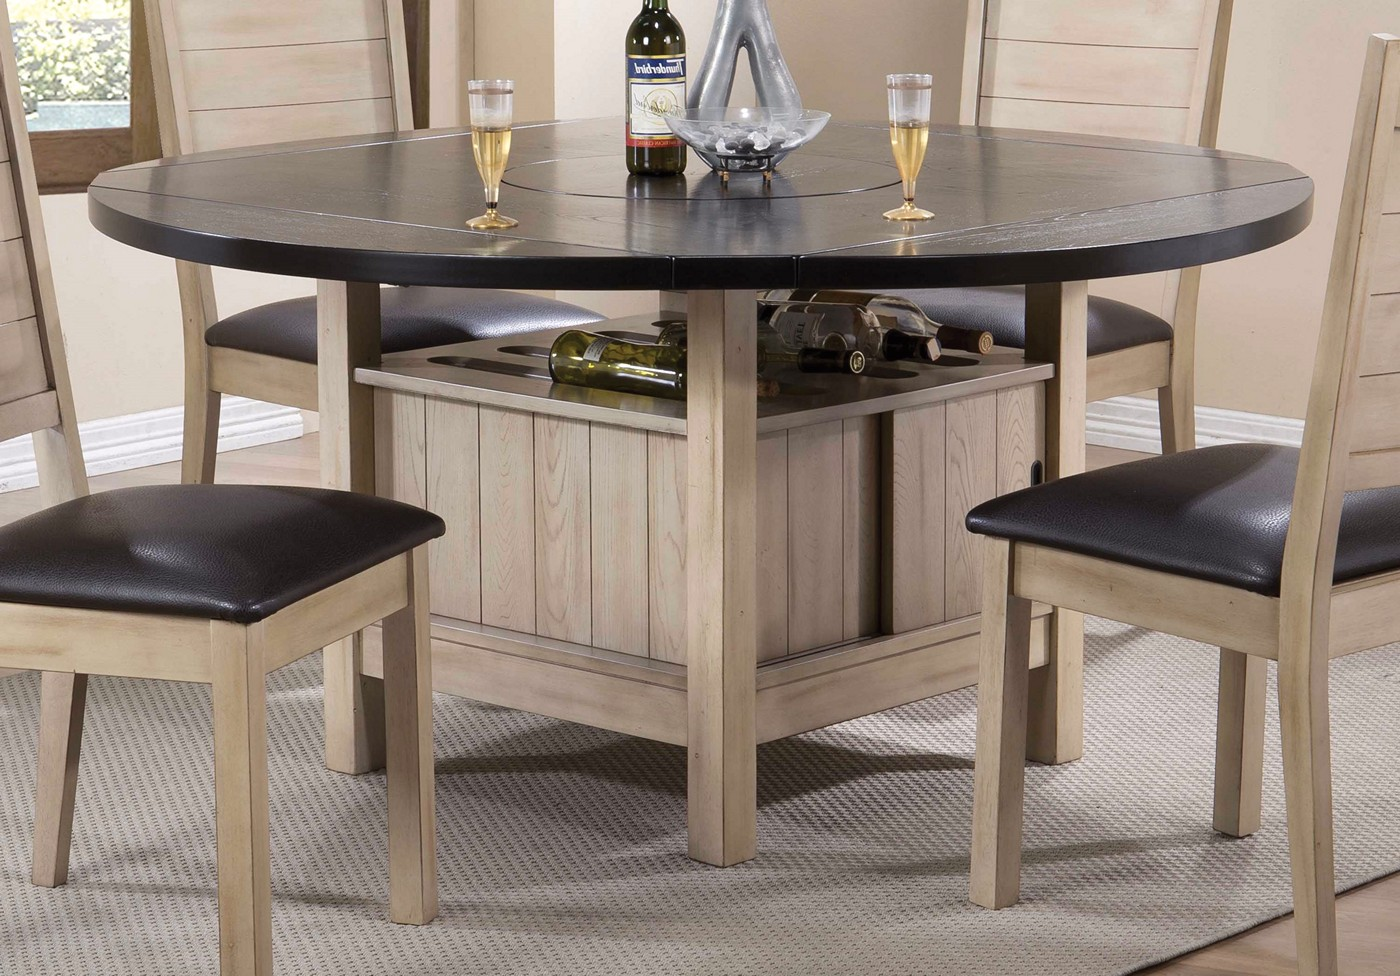 valeria 40 60 round storage dining table in dark walnut antique beige. Black Bedroom Furniture Sets. Home Design Ideas